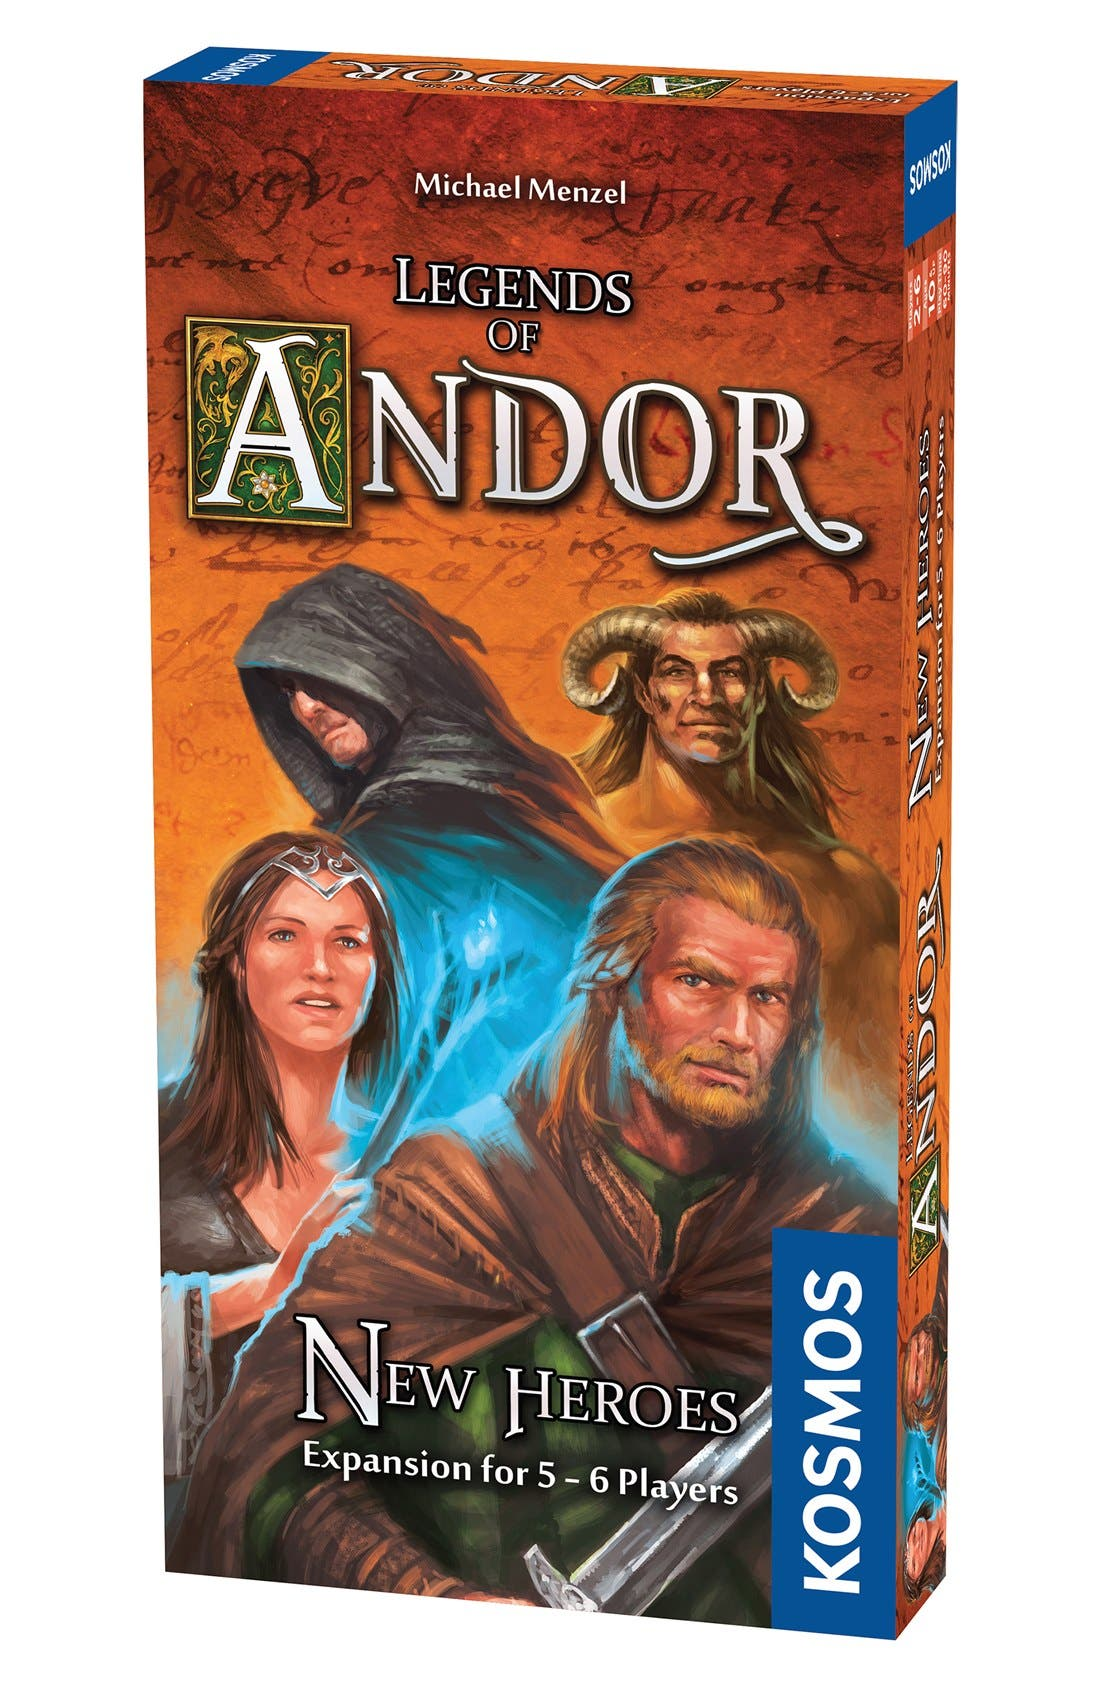 'Legends of Andor - New Heroes' Game Expansion Pack,                             Main thumbnail 1, color,                             BROWN